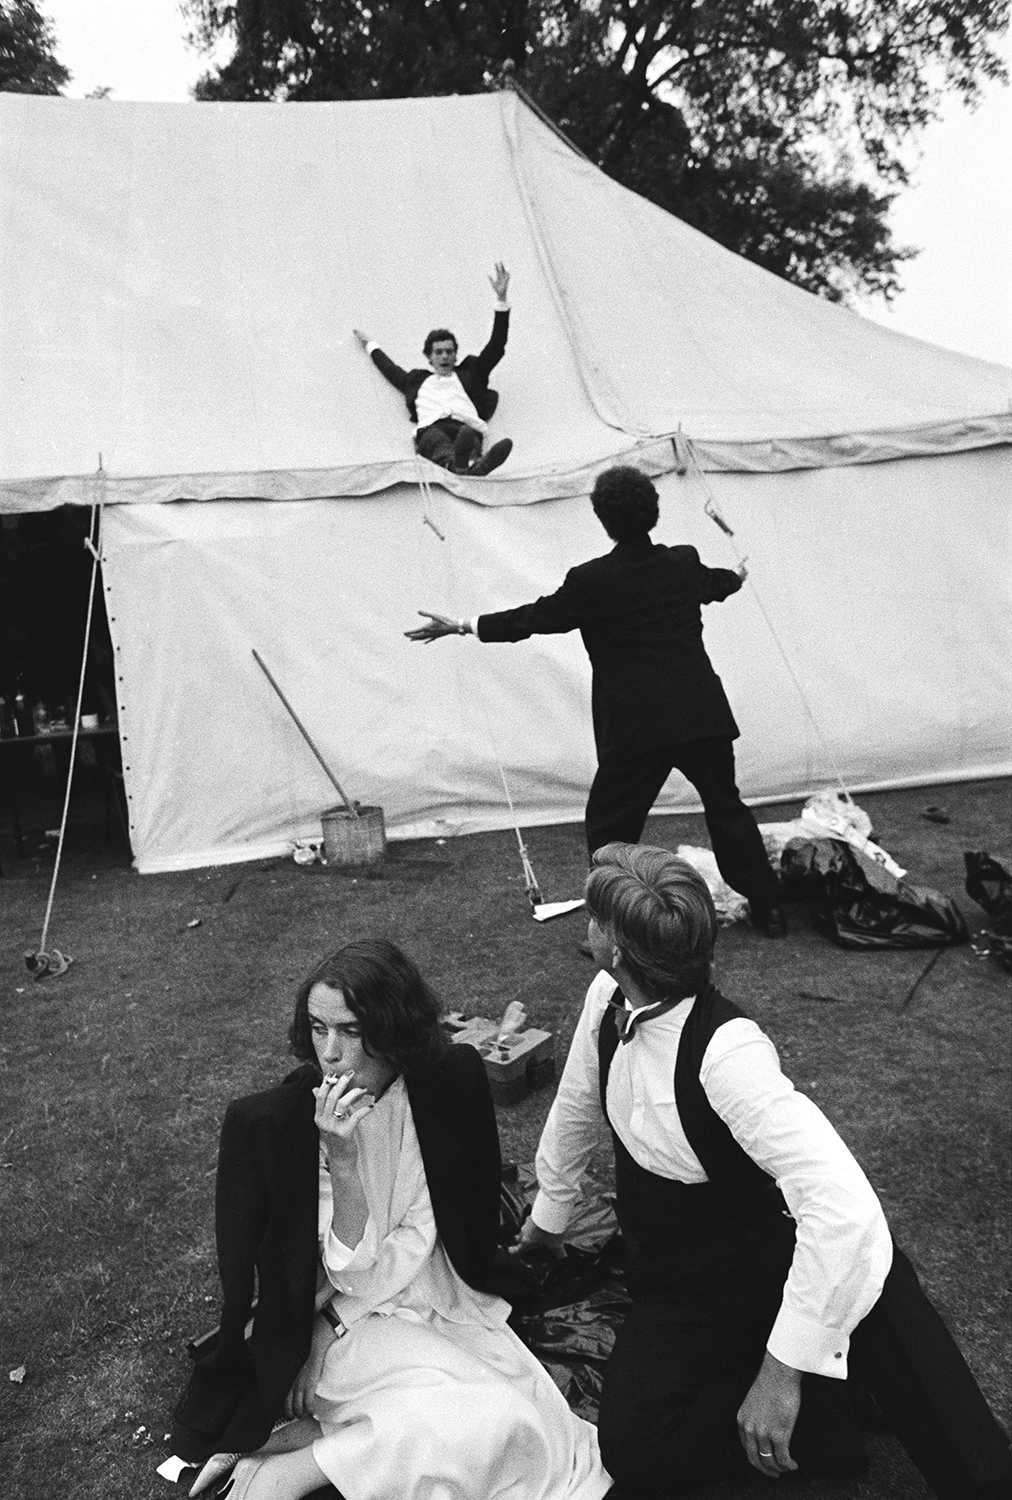 Sliding down the marquee during the New College May Ball. Oxford. 24 June 1983 © Dafydd Jones, from the book The Last Hurrah published by STANLEY/BARKER